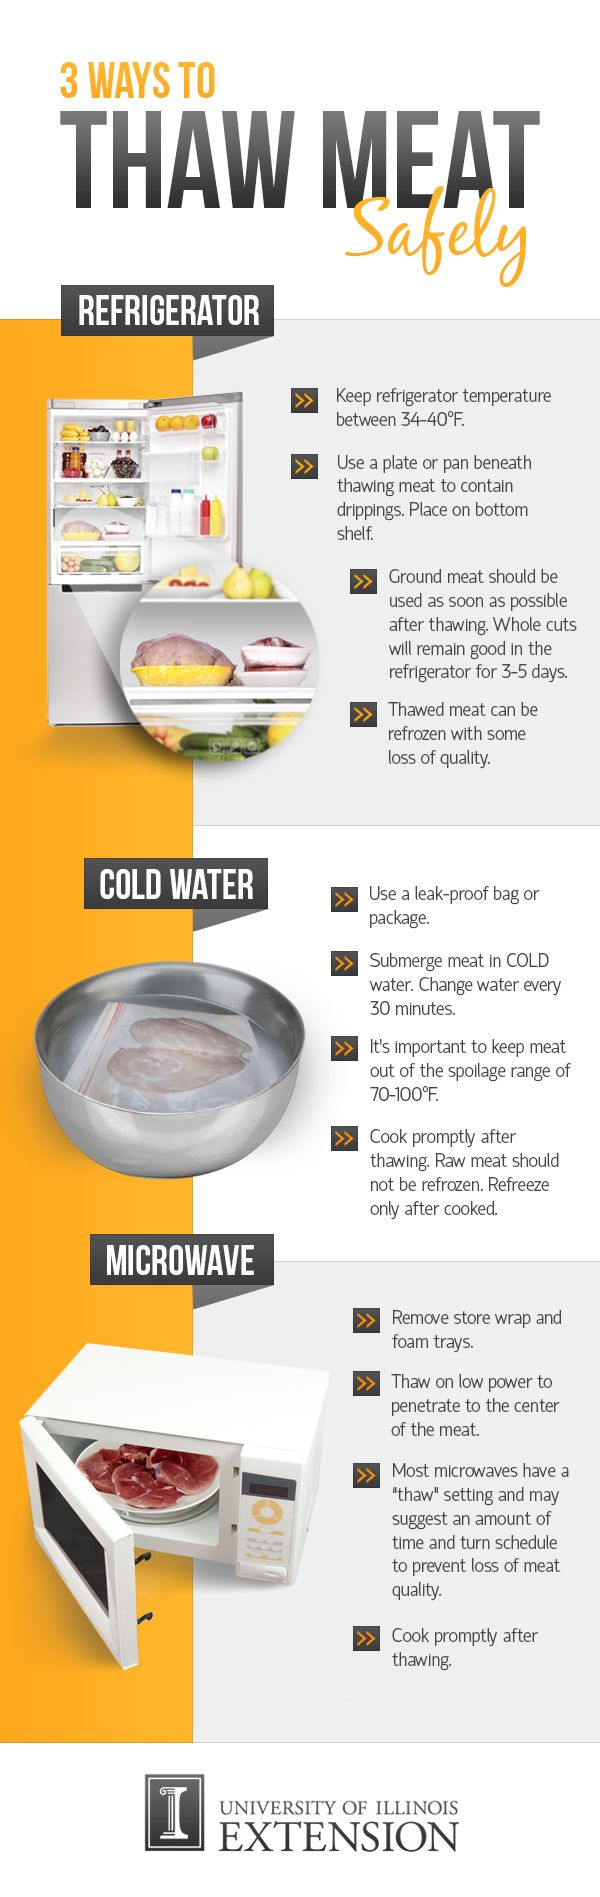 3 Ways to Defrost Meat